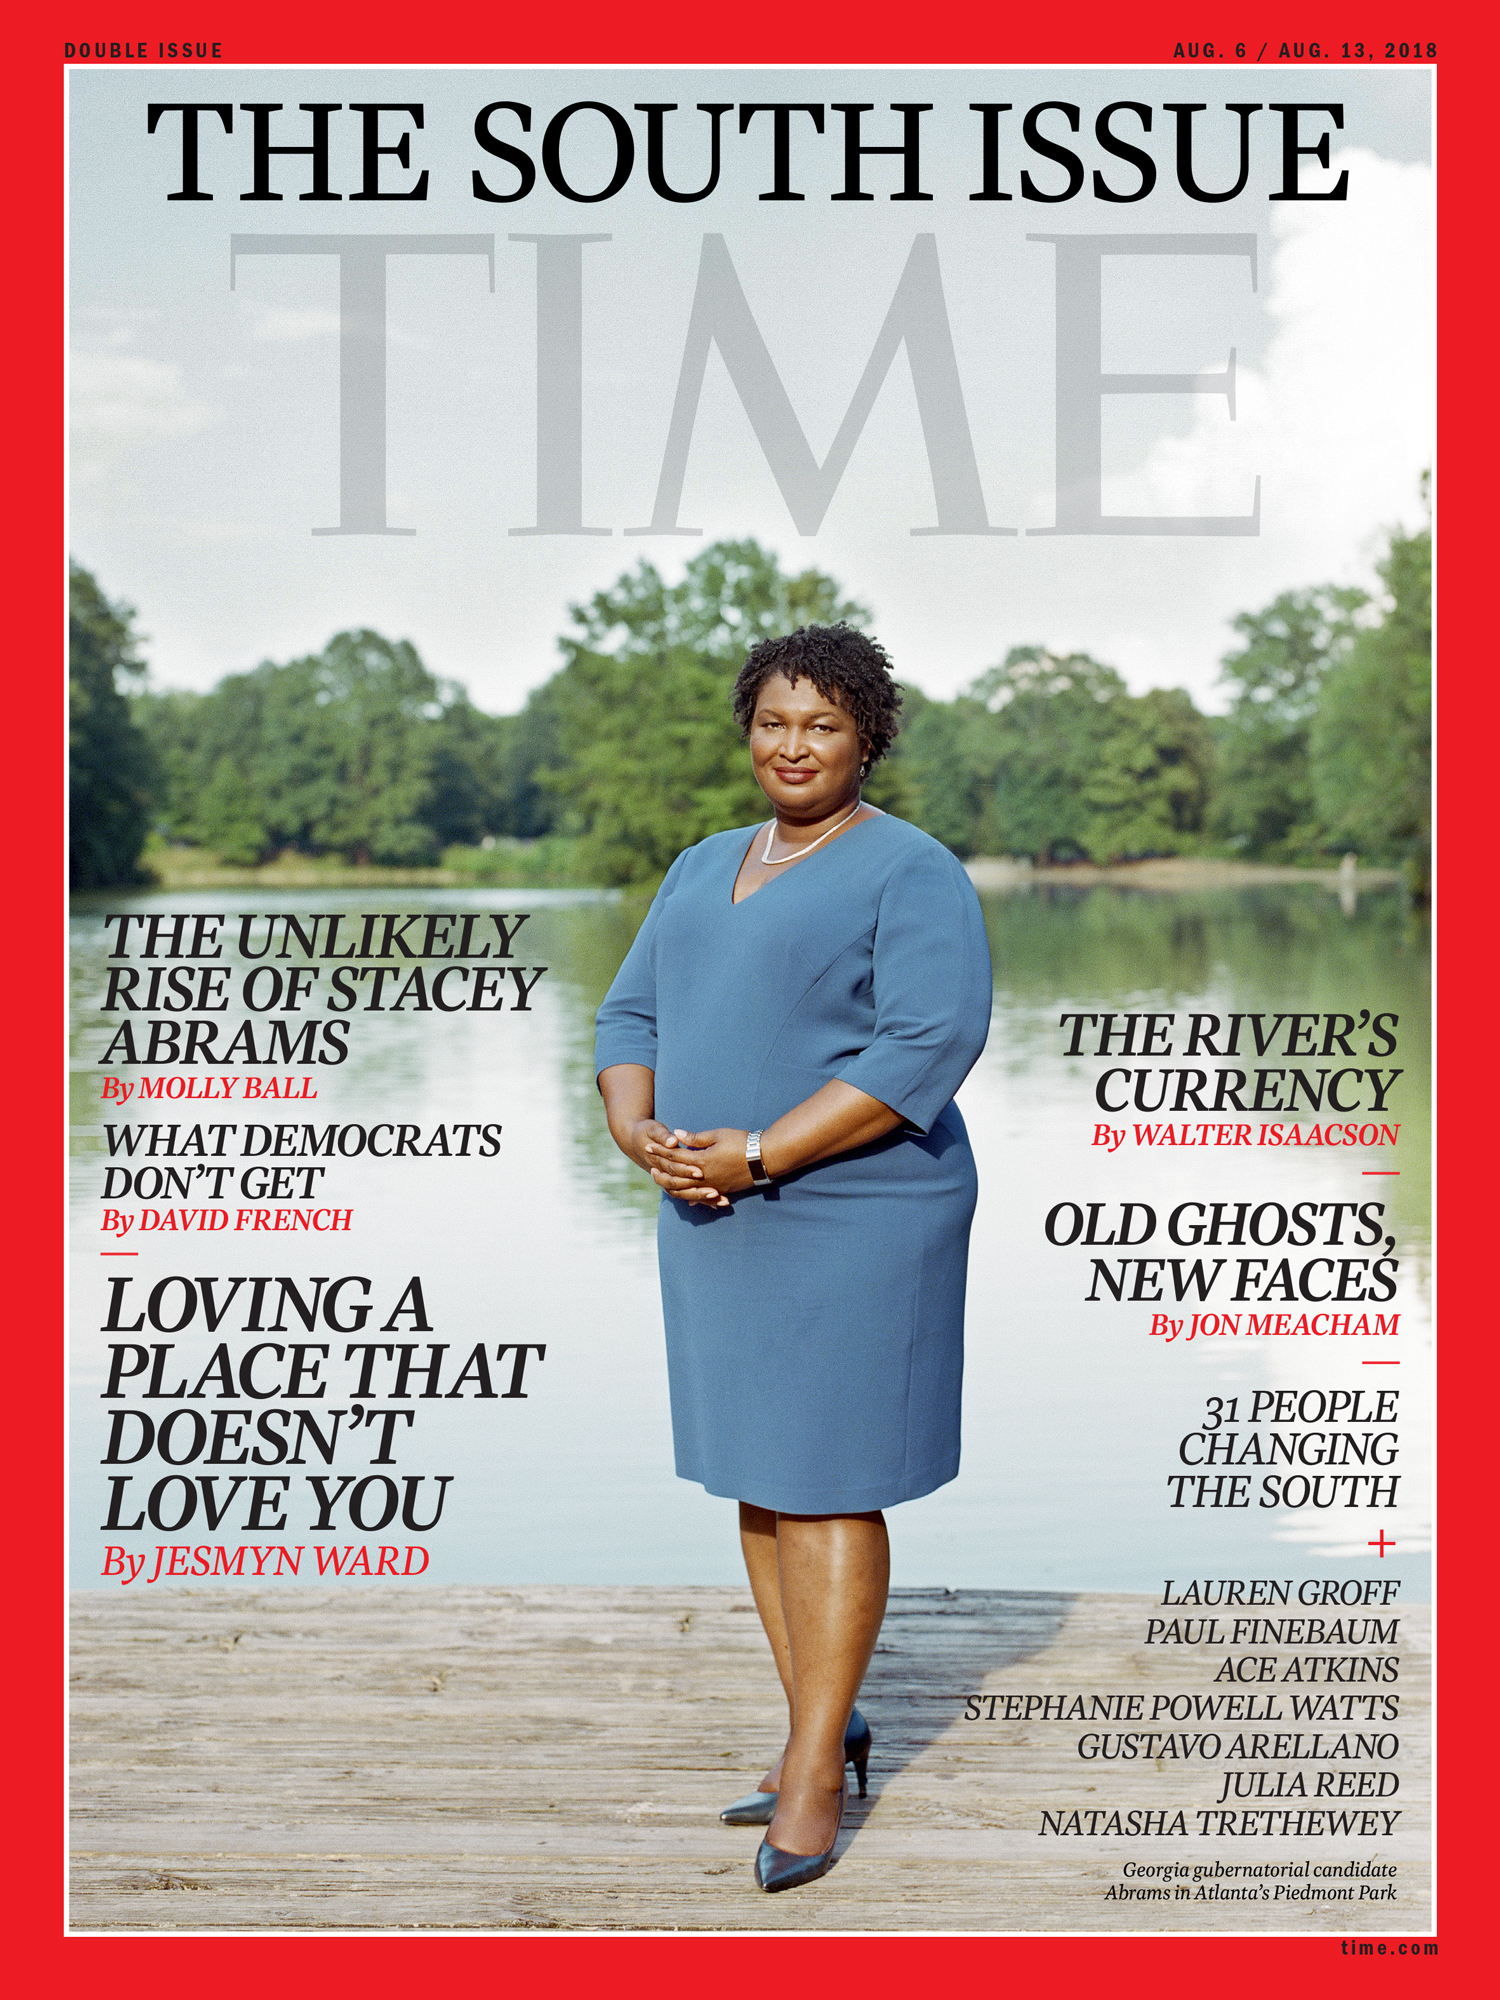 Cover for Time: The South Issue featuring Georgia Democratic gubernatorial candidate Stacey Abrams